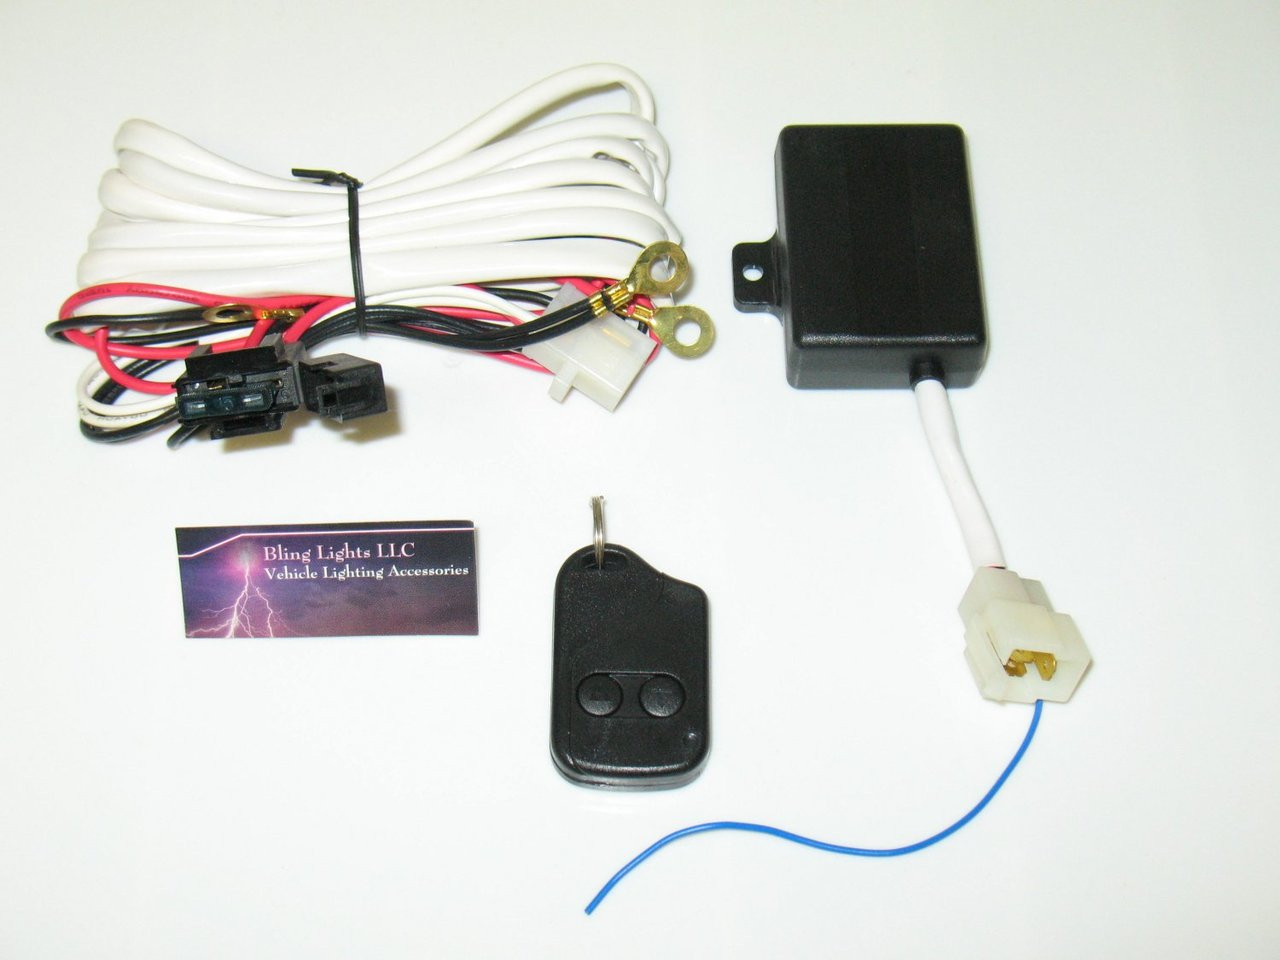 apc 509109 remote controlled auxiliary light kit wiring harnessapc wiring harness 19 [ 1280 x 960 Pixel ]